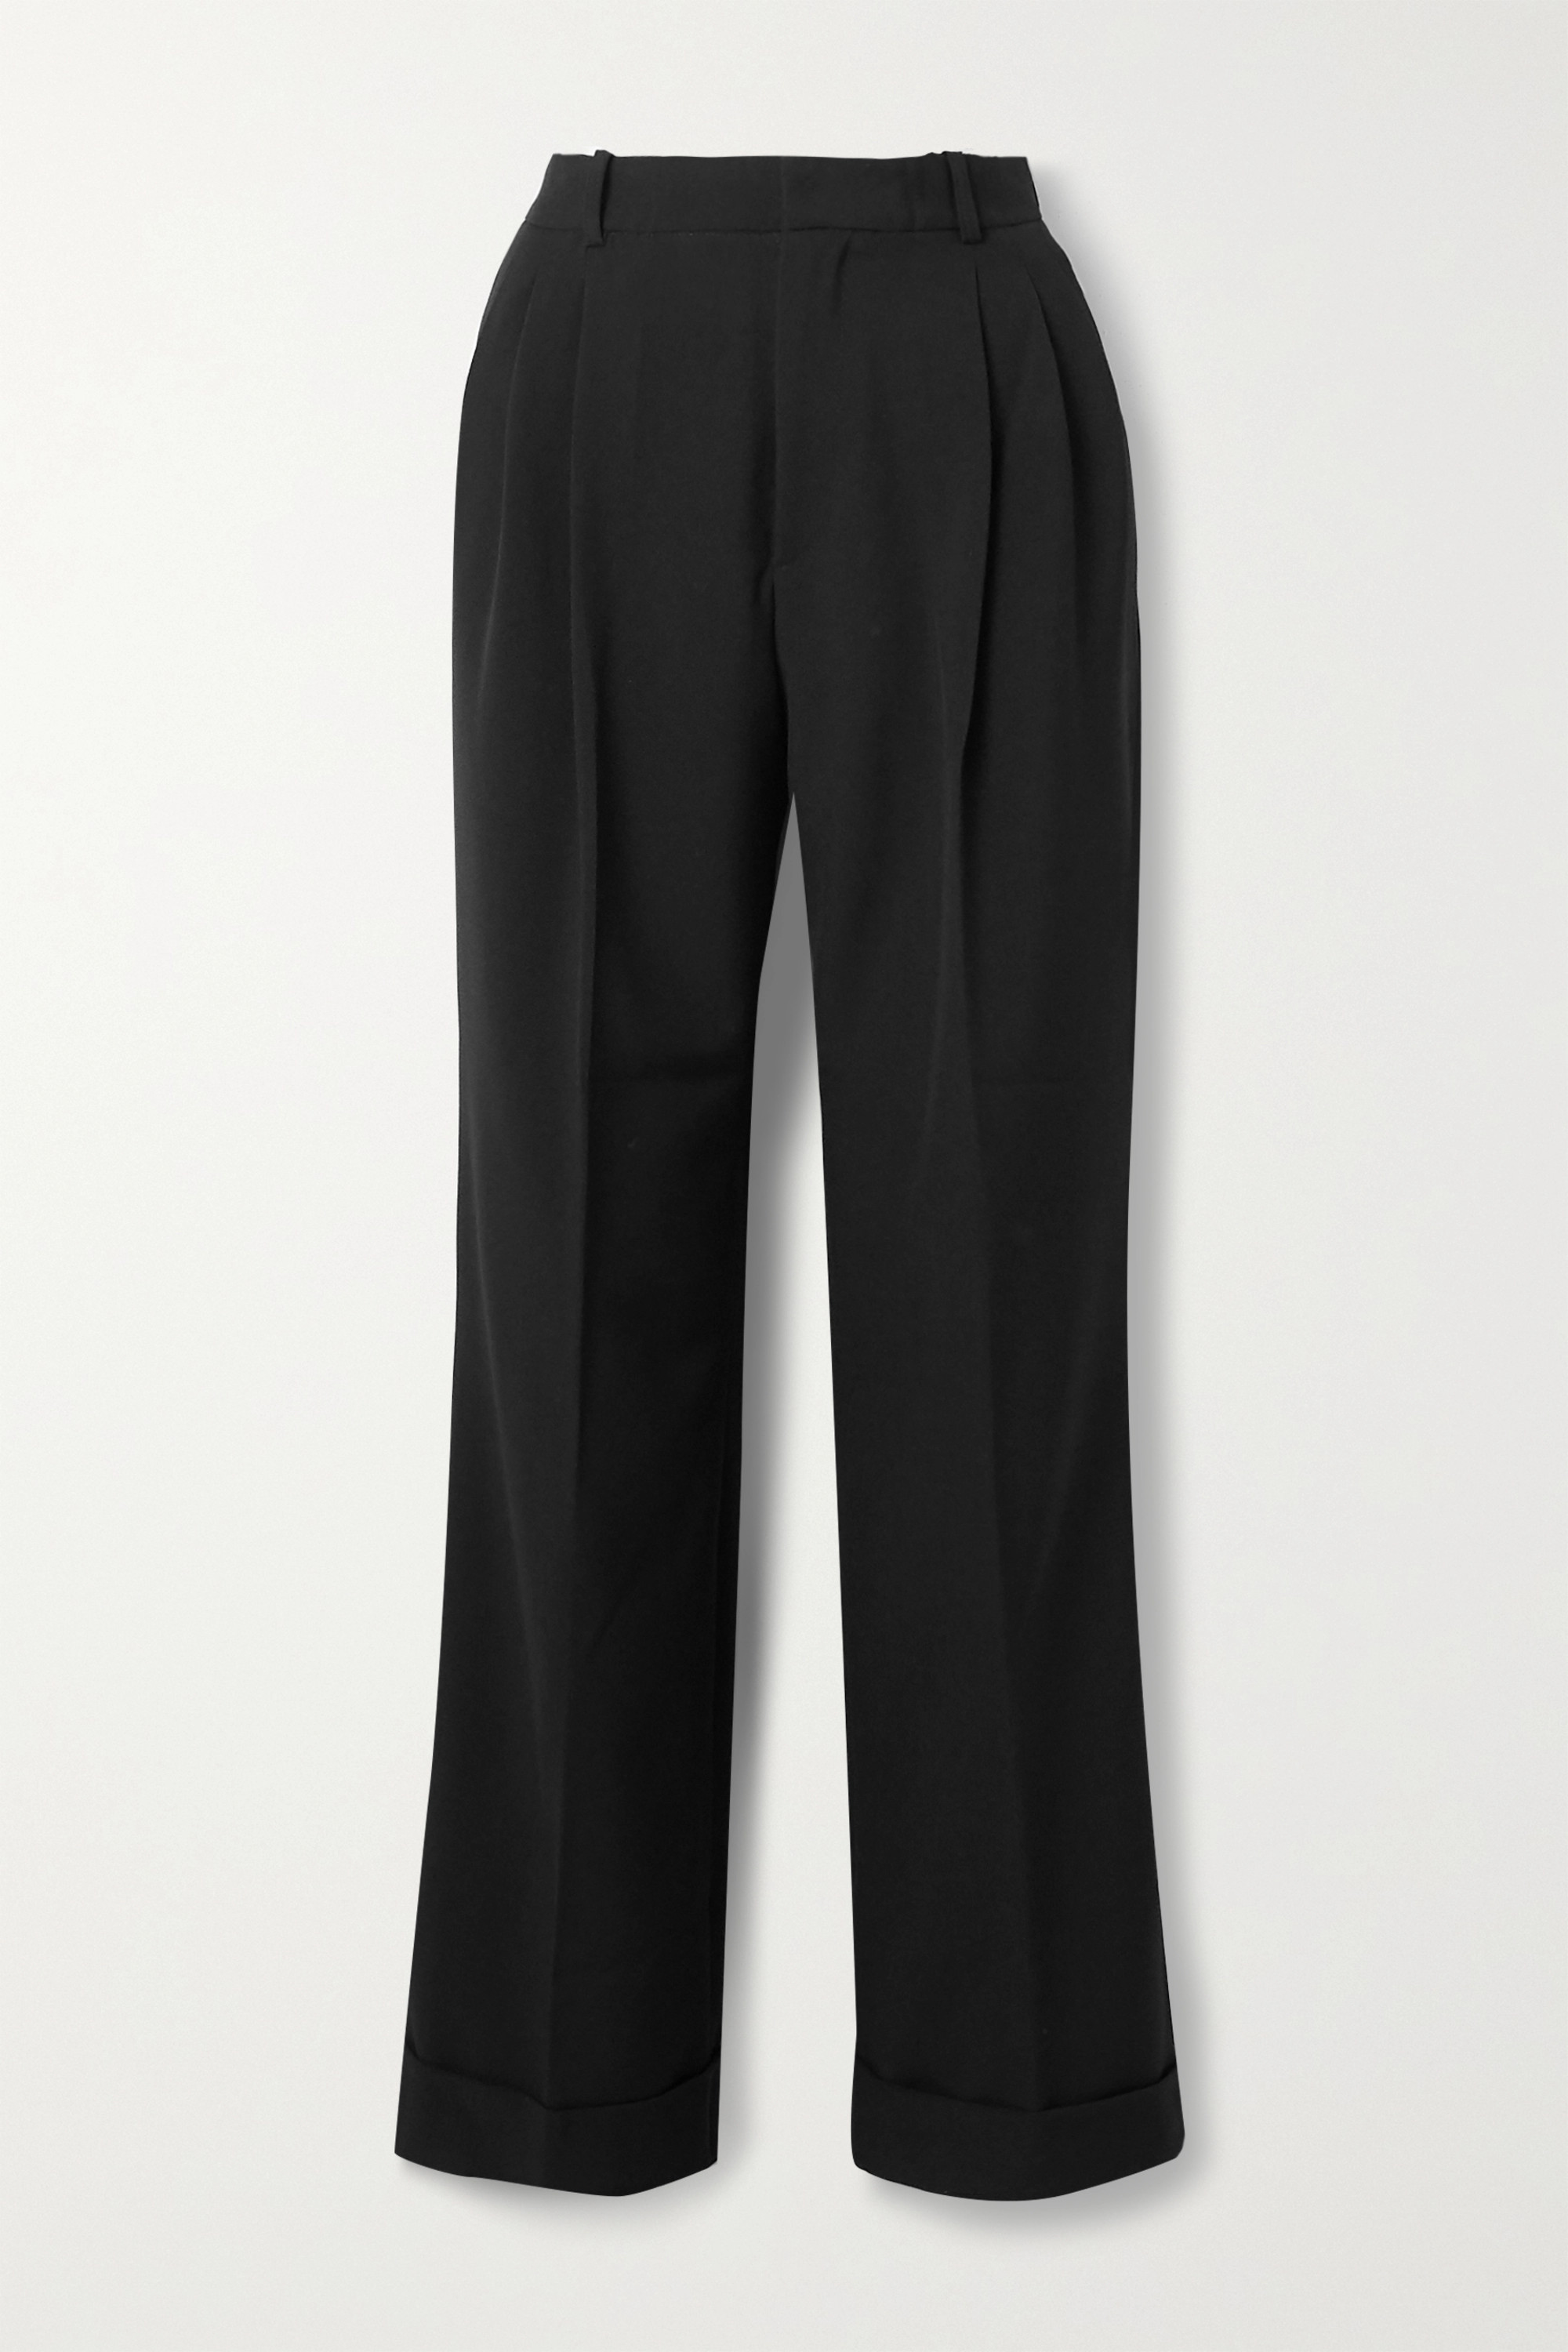 Àcheval Pampa Gardel pleated woven wide-leg pants